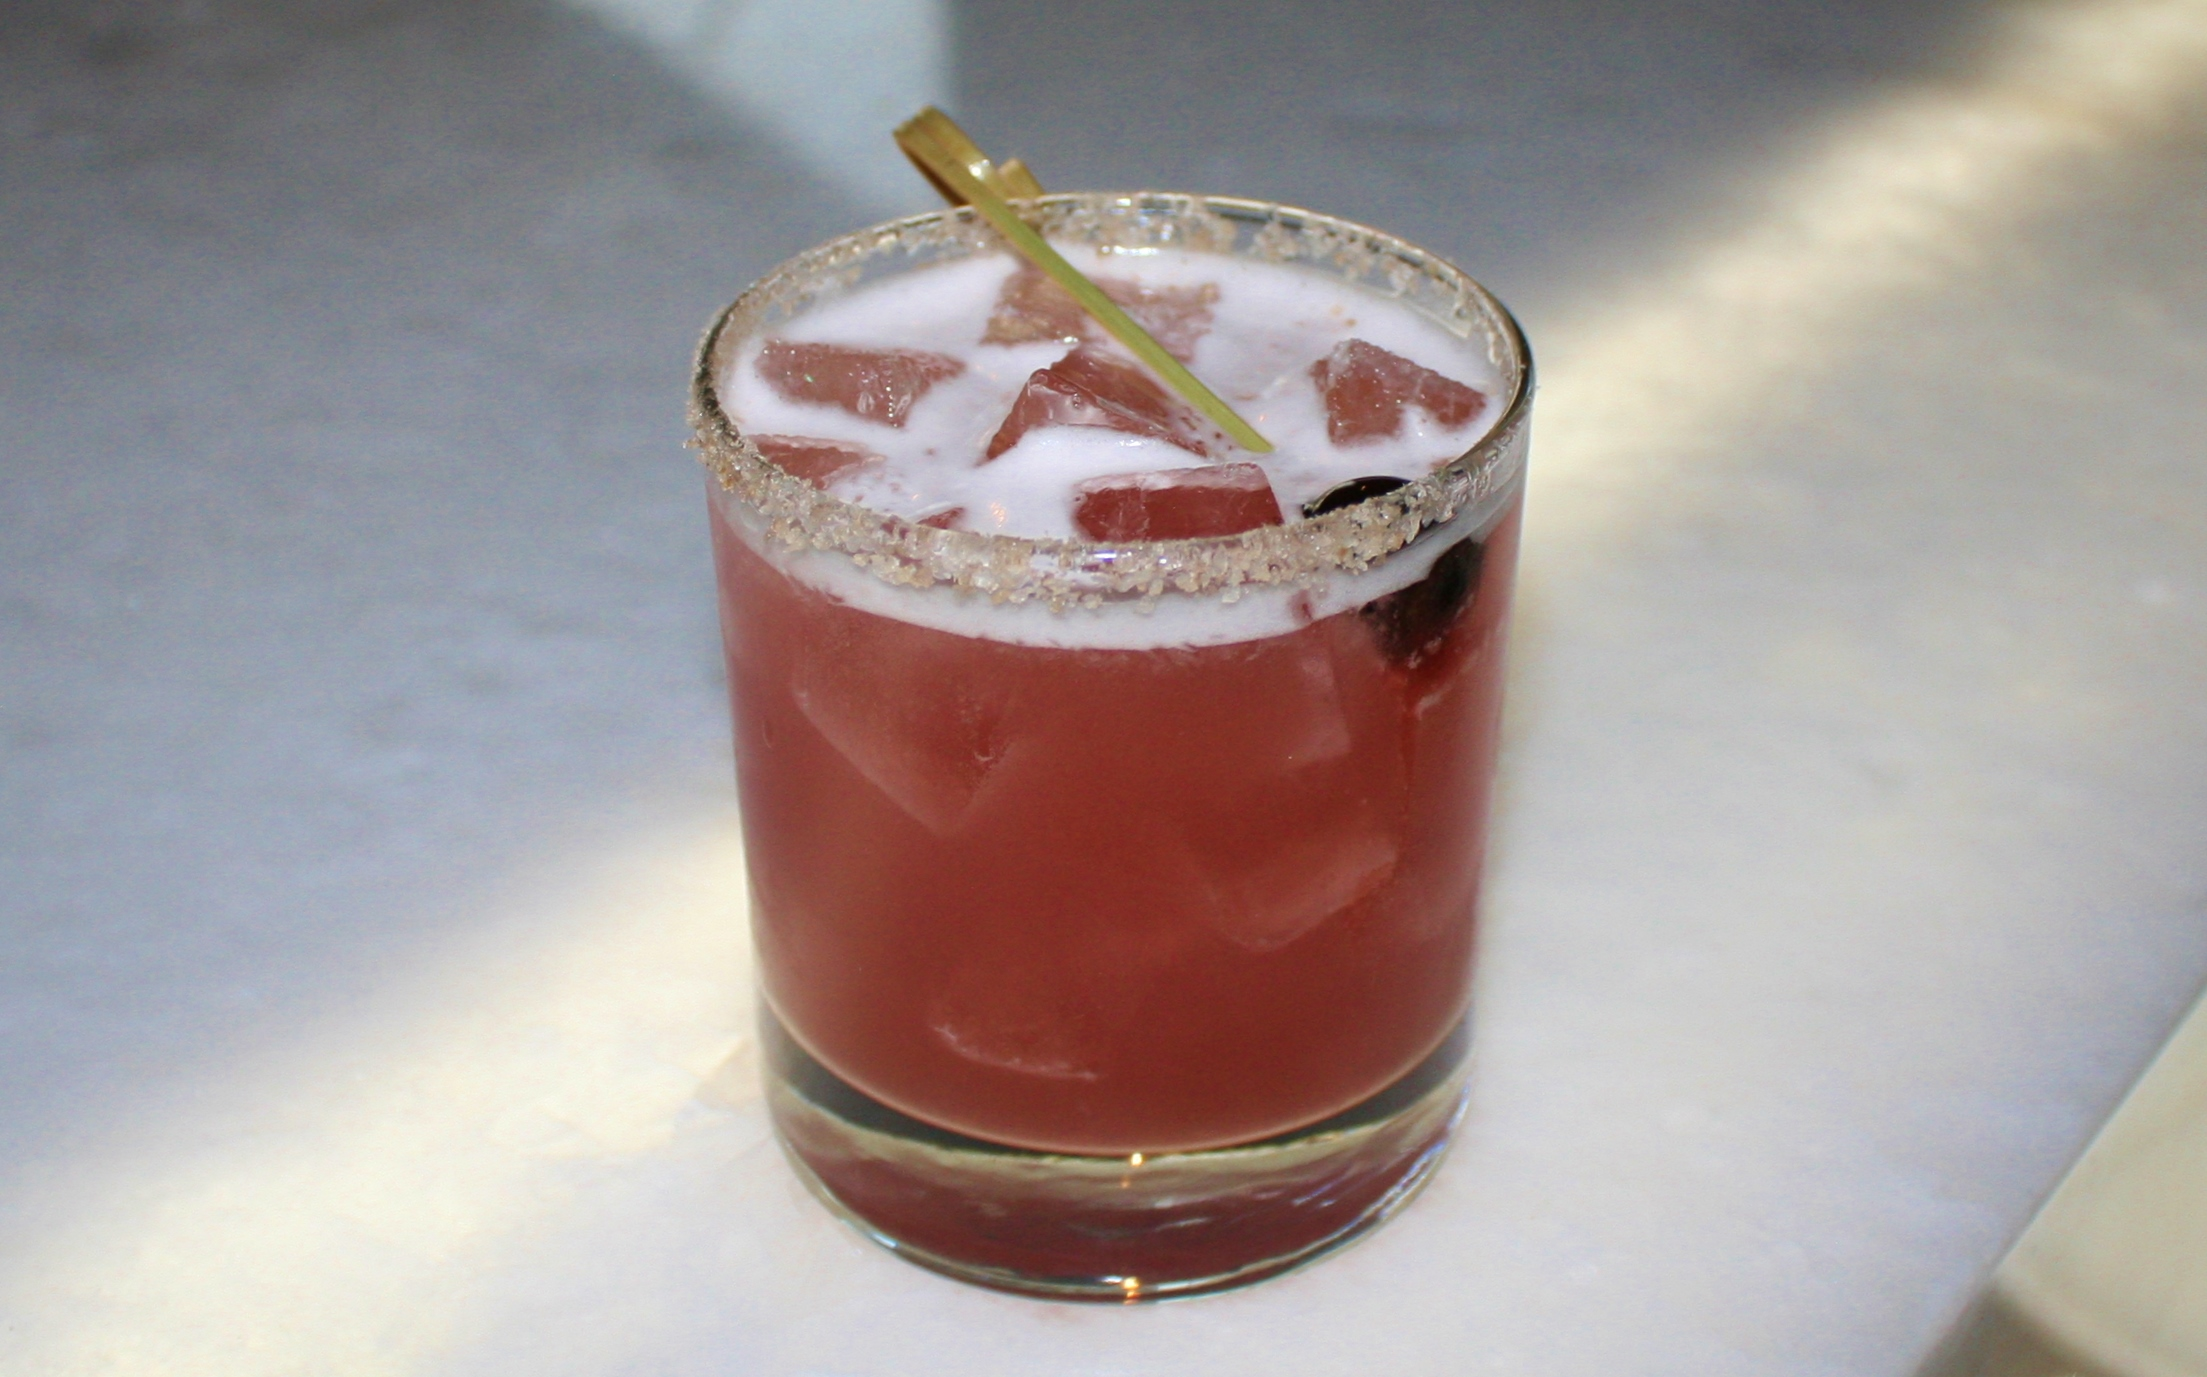 Cerise Fumée with Vida mezcal, Ancho Reyes chile liqueur, black cherry puree, lime juice and smoked sea salt.